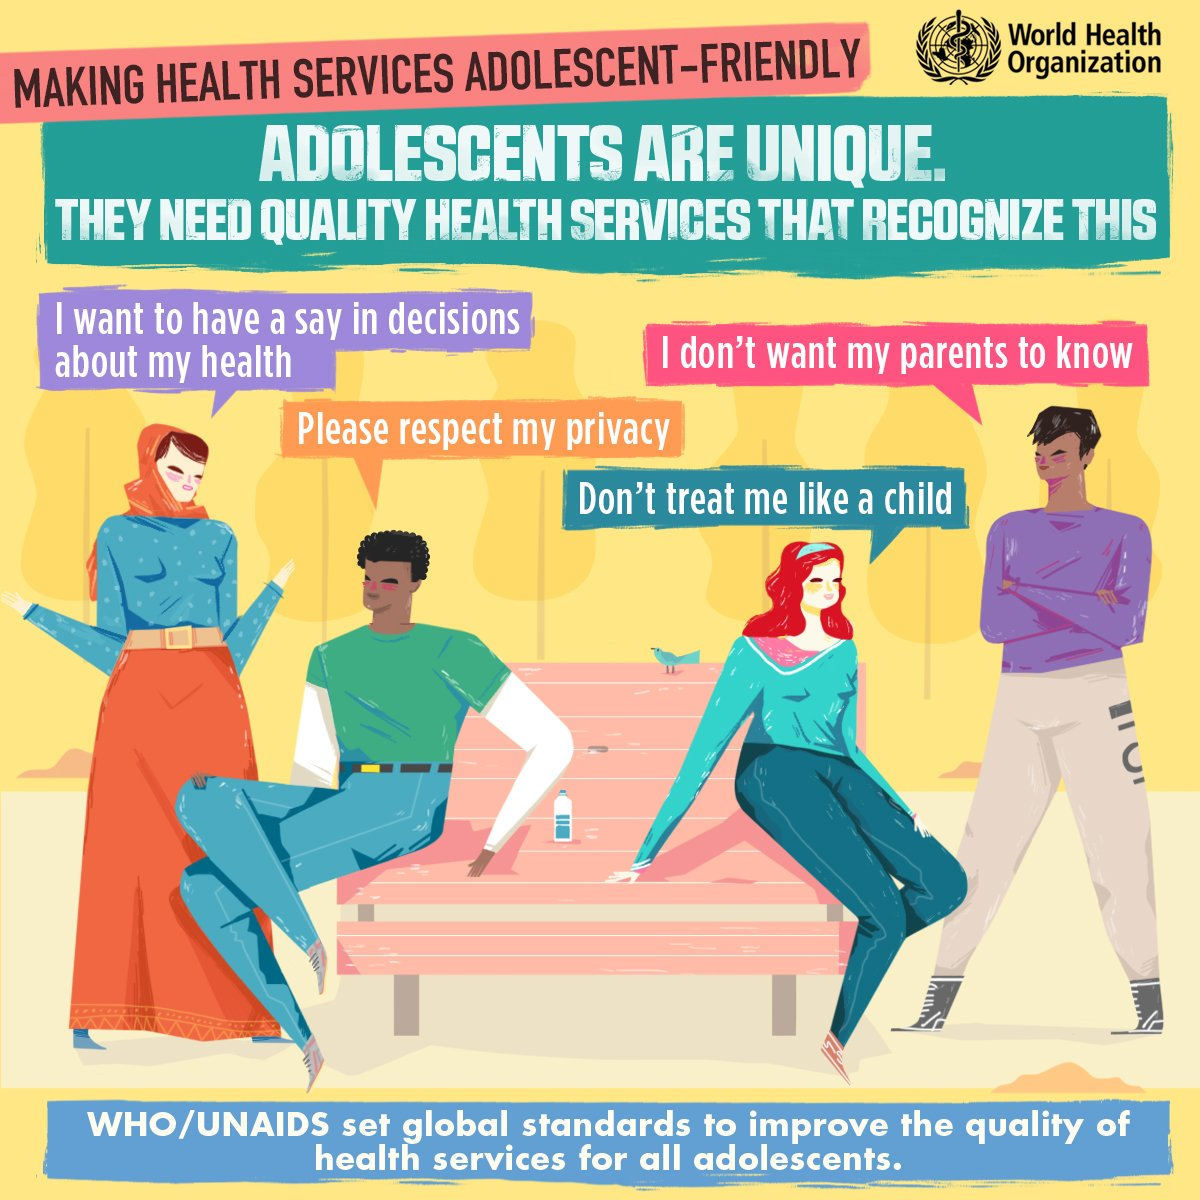 Making health services adolescent-friendly (Source: WHO)